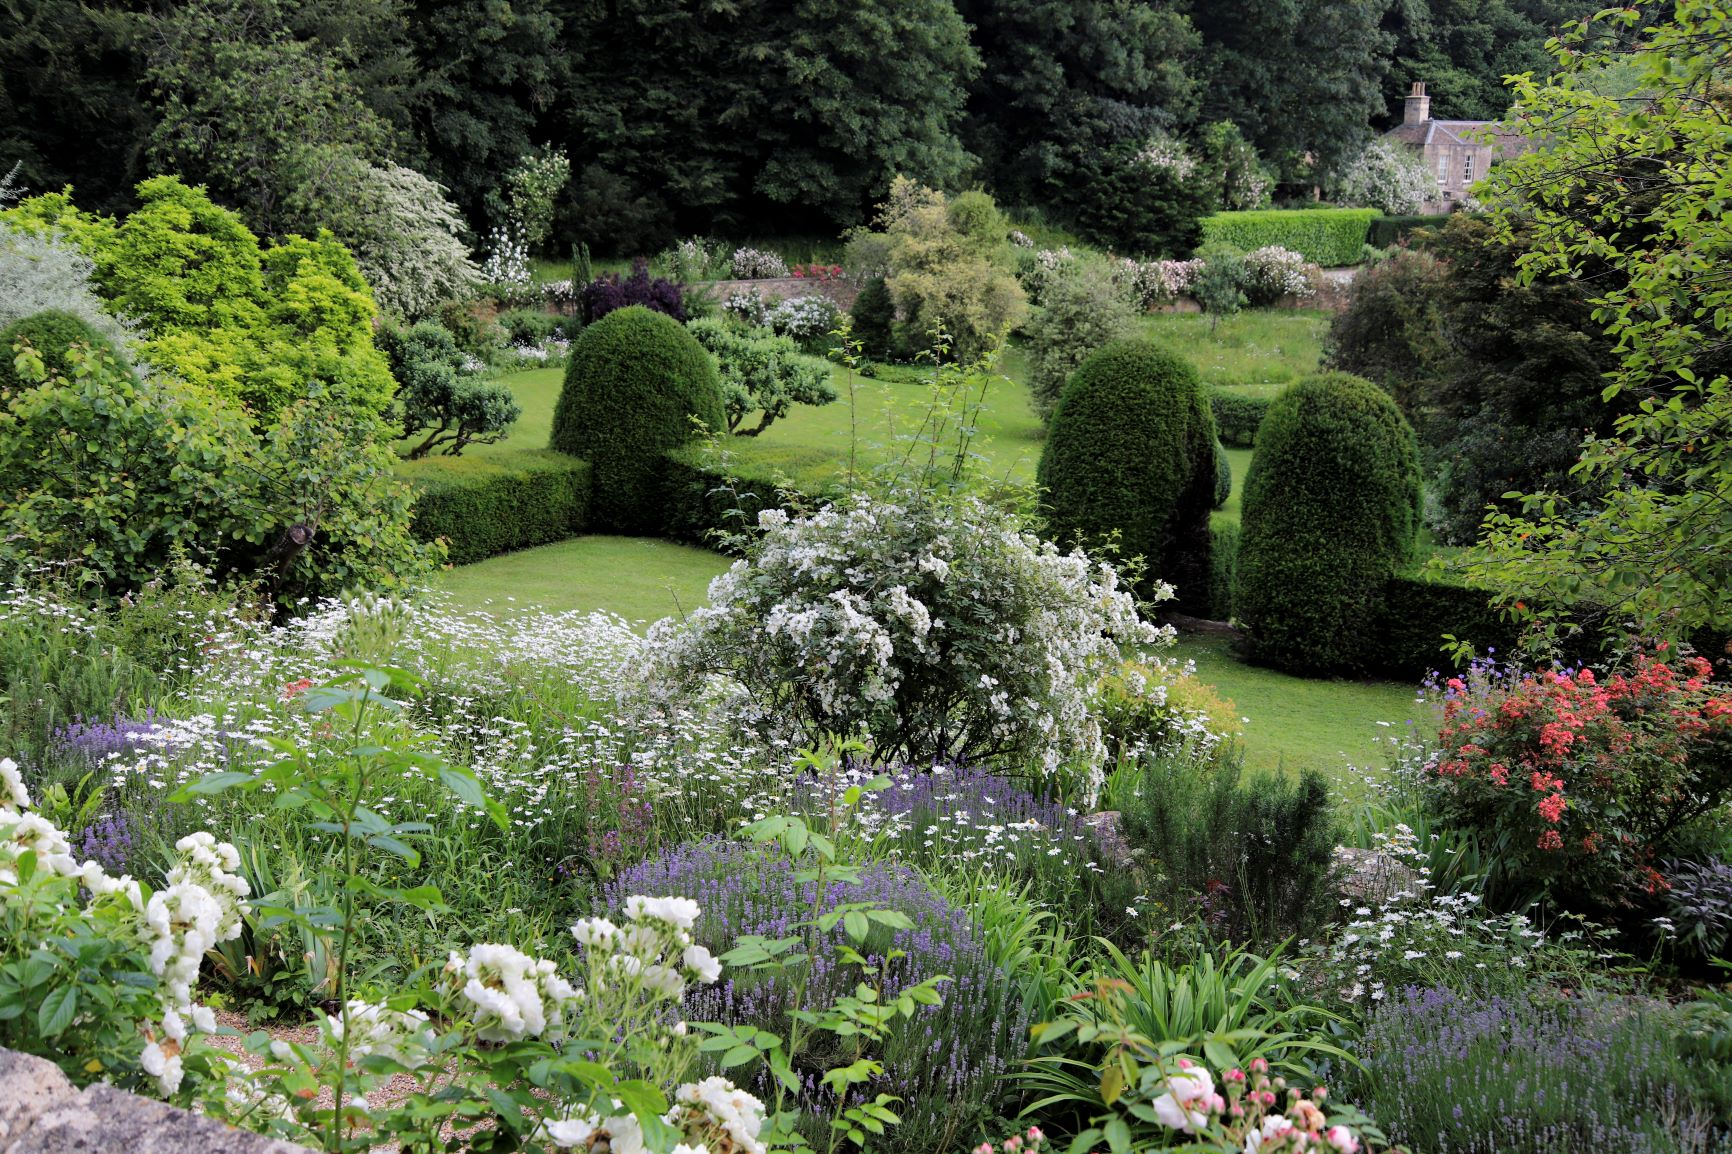 View across the garden, Moor Wood, copyright Charles Hawes